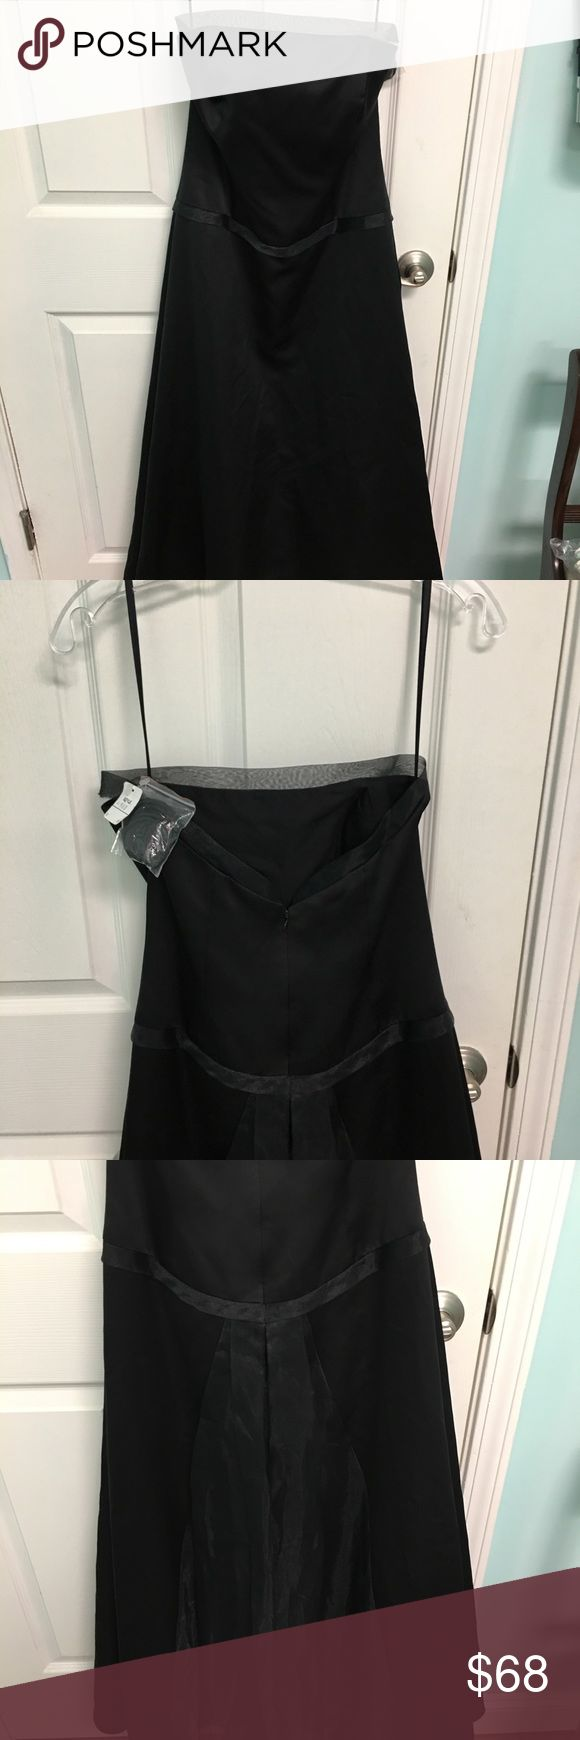 Bari Jay Little Black party dress 9 / 10 Bari Jay  Size 9/10 Brand new with tags  Strapless with optional spaghetti straps included in the package. Tea length Perfect little black dress at a great price! Great for a Christmas party or a New Years.   Bari Jay is a designer that make high end gowns and bridesmaid dresses. bari jay Dresses Midi